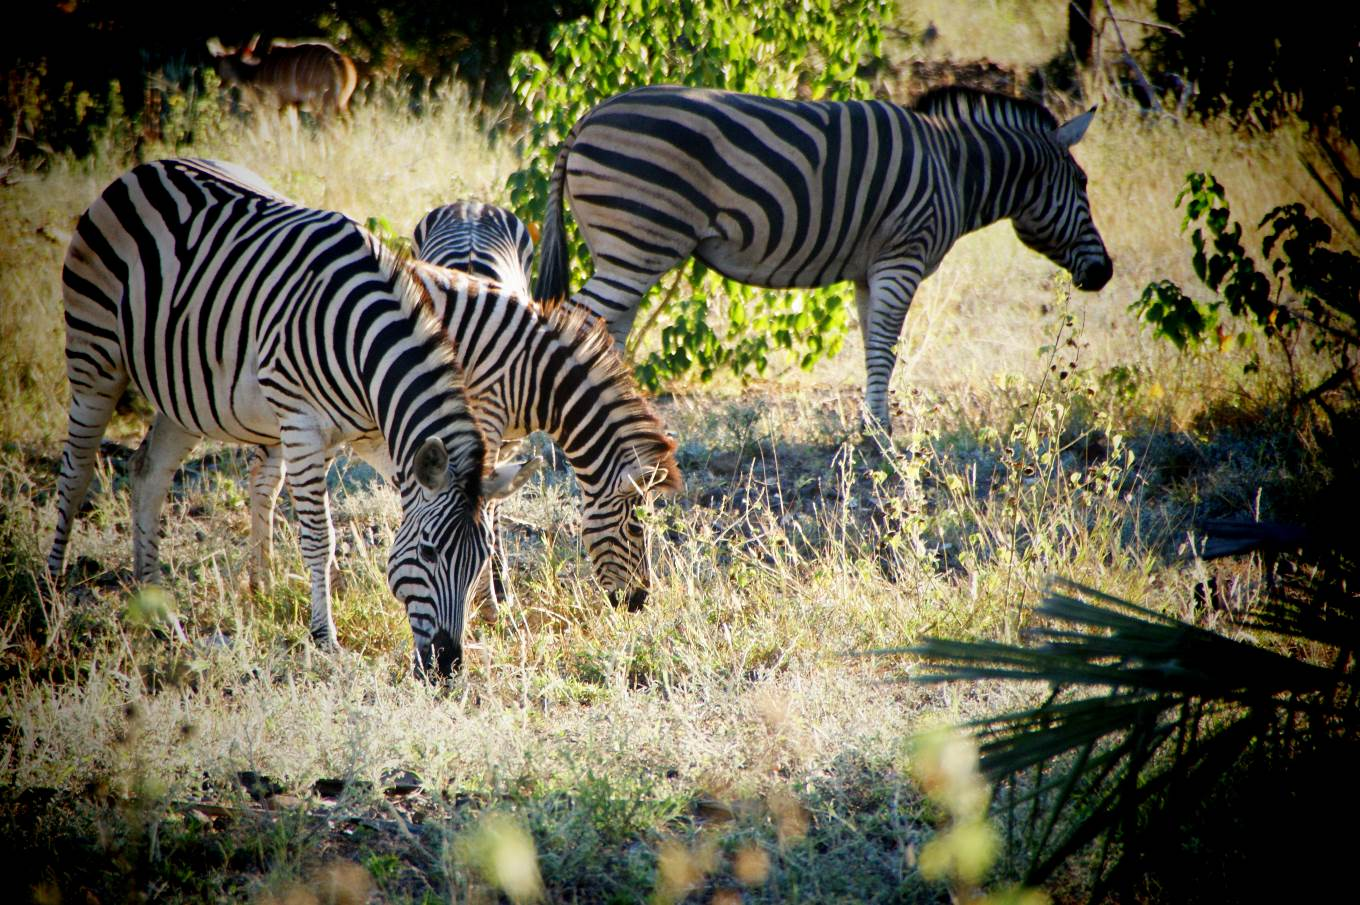 Game Drives through the Eastern Cape Game Parks in South Africa, Zebra sightings